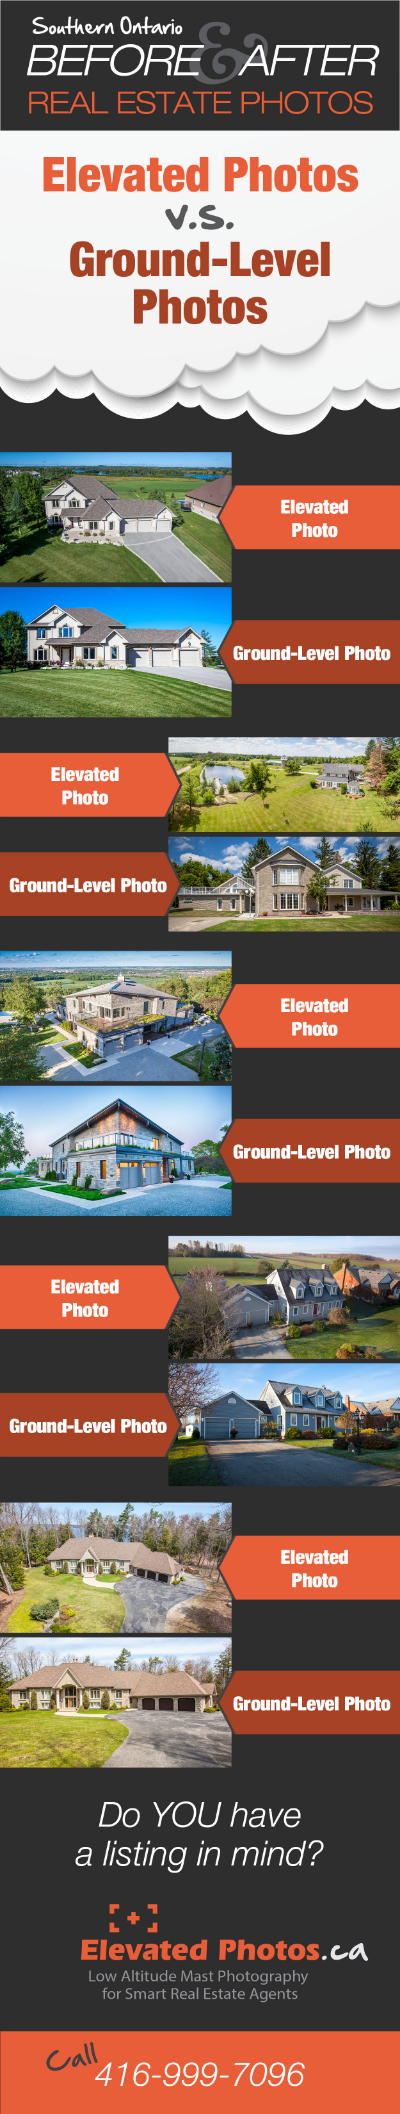 Real estate infographic showing the difference between elevated photos and ground-level photos.